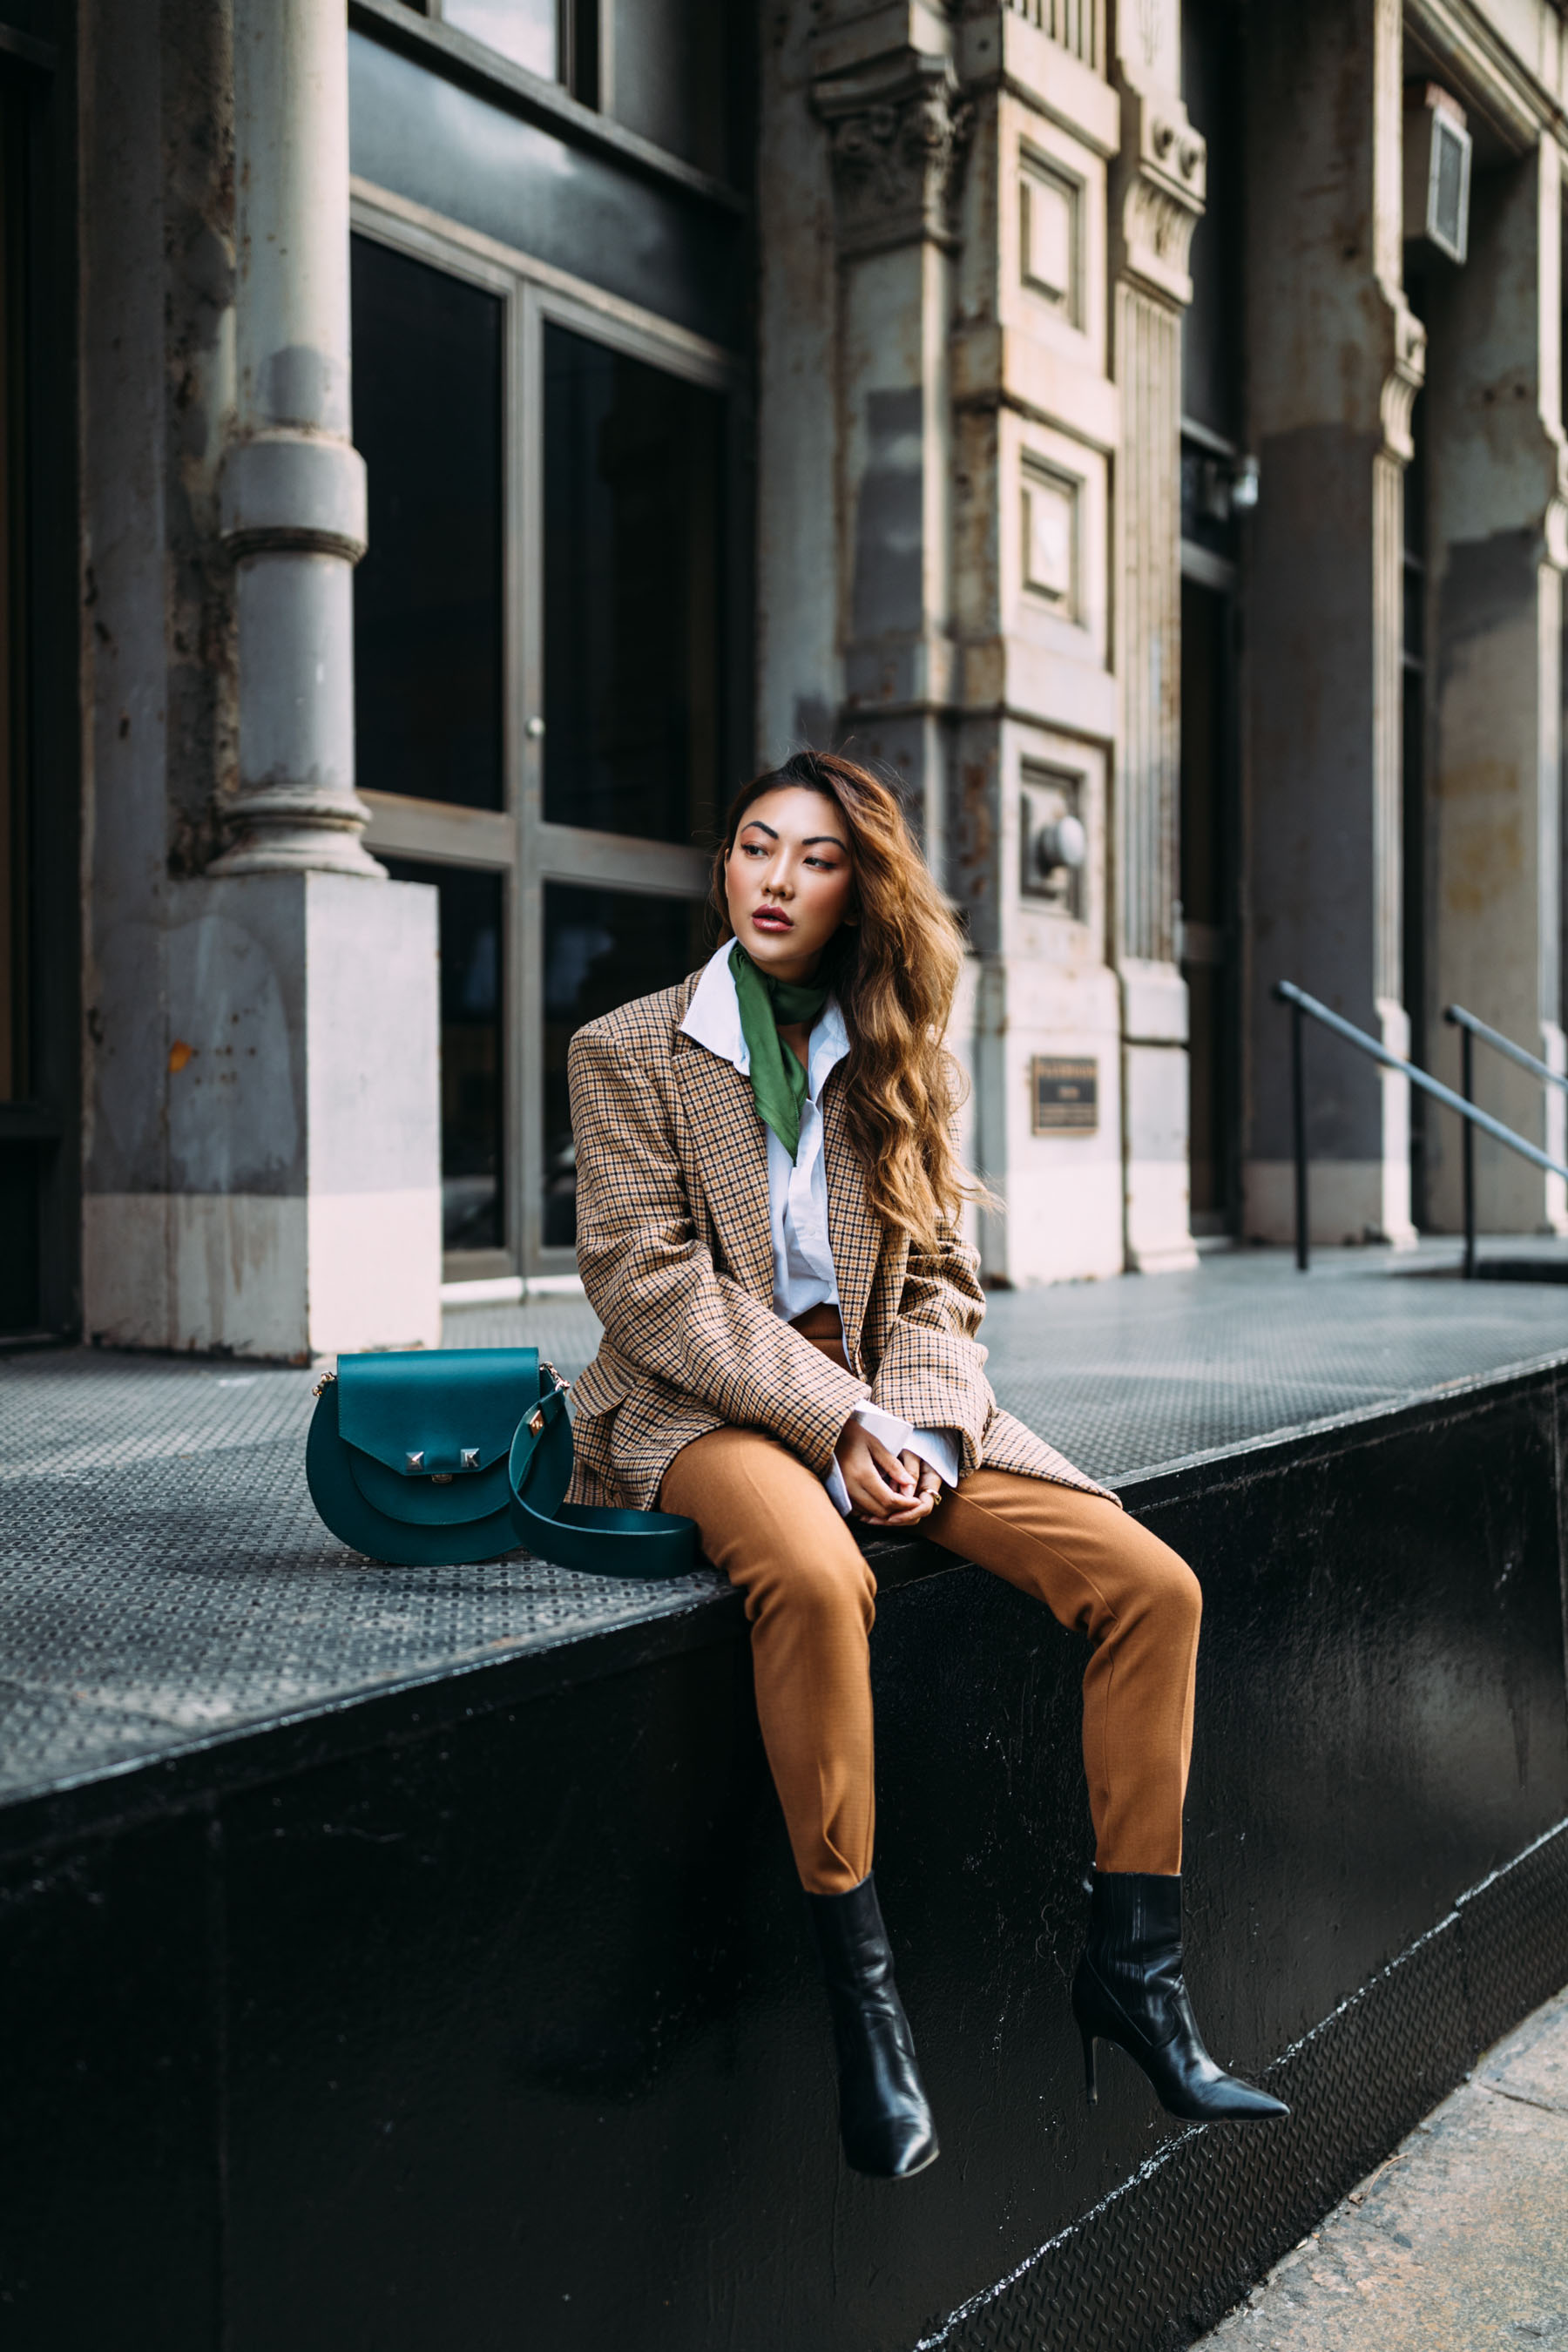 4 Key Pieces to Pull Off Menswear-Inspired Outfit // Notjessfashion.com // NYC fashion blogger, top fashion blogger, asian blogger, oversized blazer, plaid blazer, menswear inspired fashion, jessica wang, green accessories